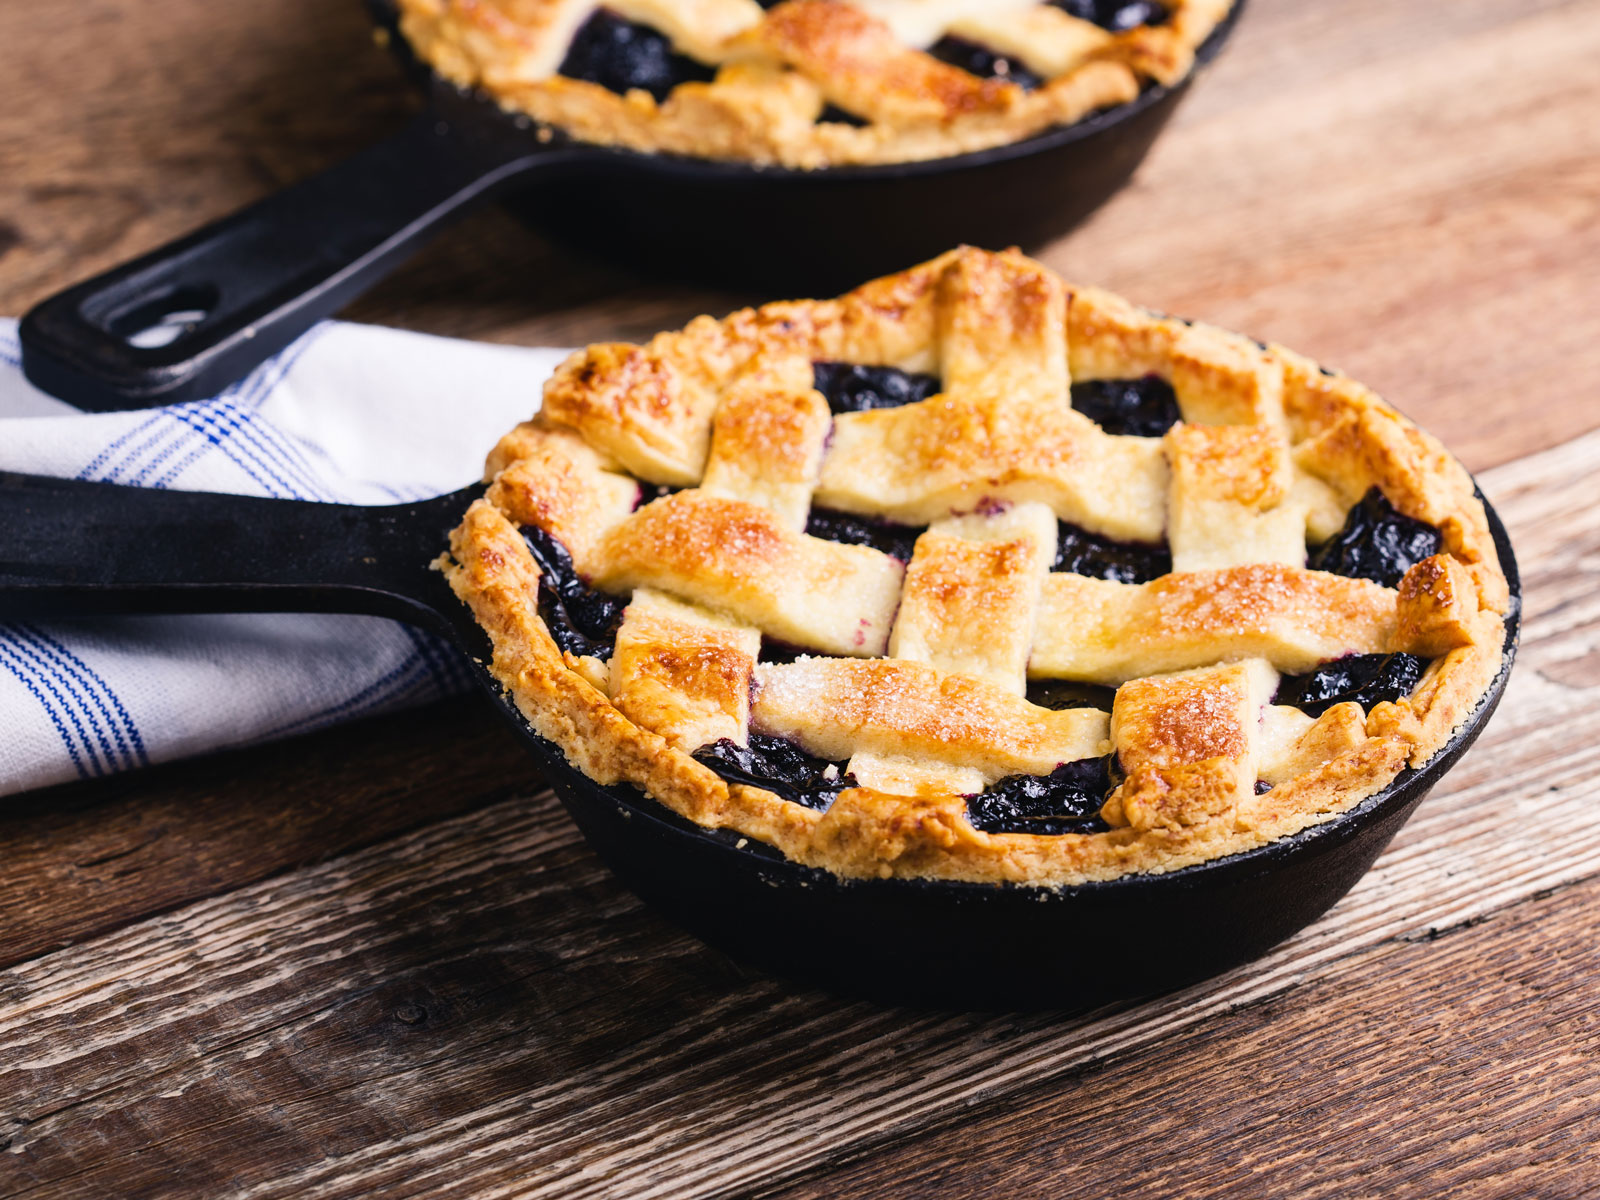 Celebrate National Pi Day 2019 with these delicious 3.14 deals